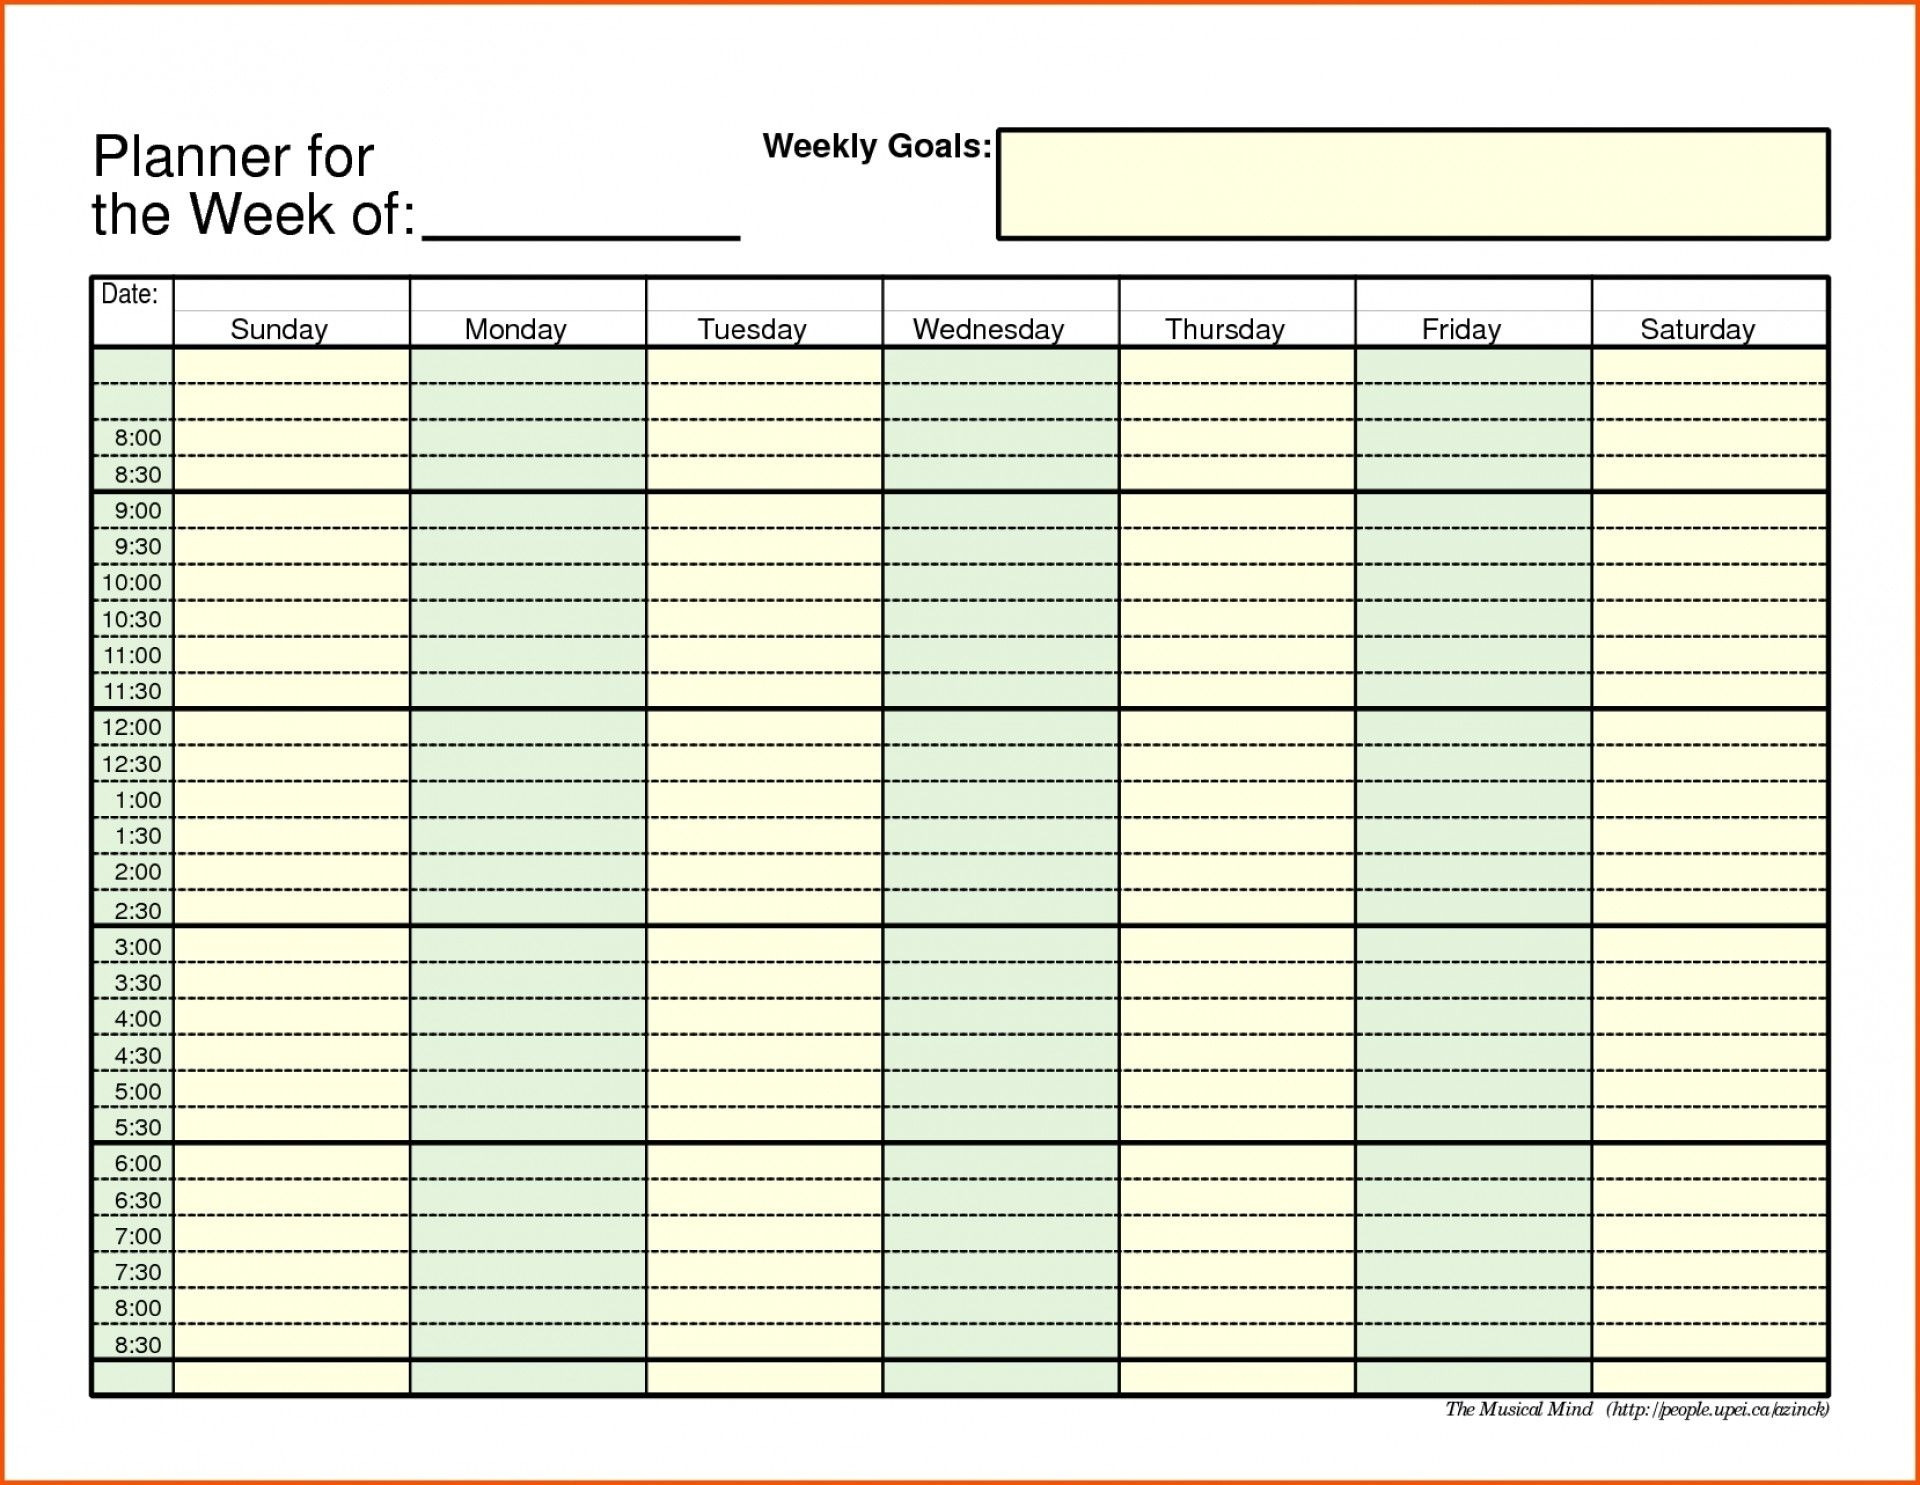 Daily Schedule With Time Slots Calendar Inspiration Design